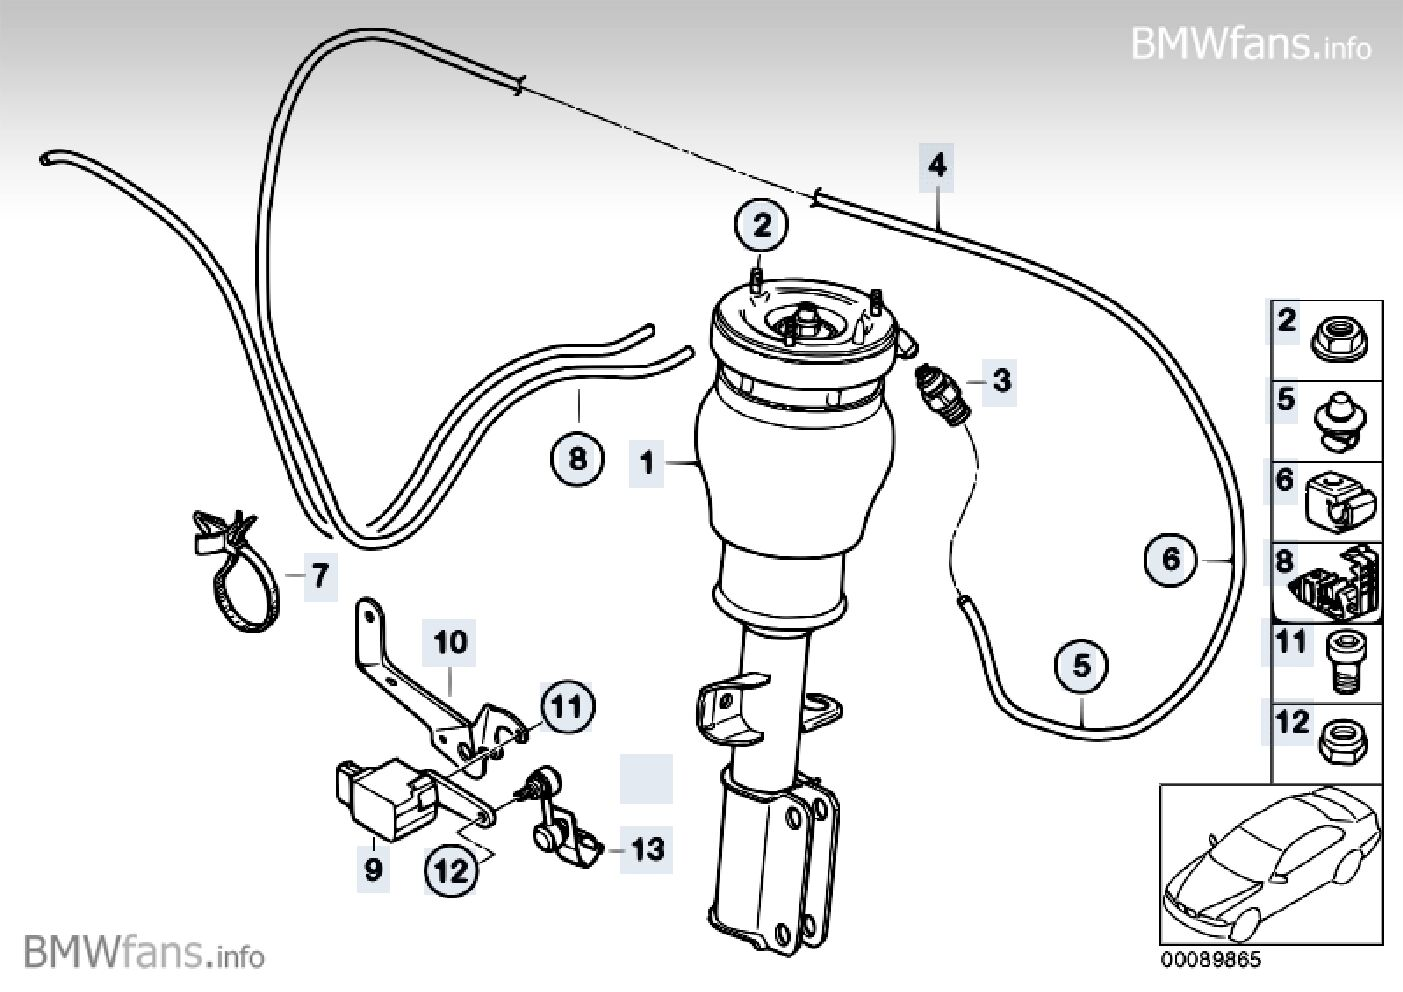 Bmw F 22 Suspension Diagram as well 2010 Bmw 535i Parts Diagram Html further 02 BASICS Replacing Your Drive Belt mobile likewise 1984 Bmw 318i Engine Diagram moreover Bmw 325i Vacuum Hose Diagram. on bmw e30 belt diagram